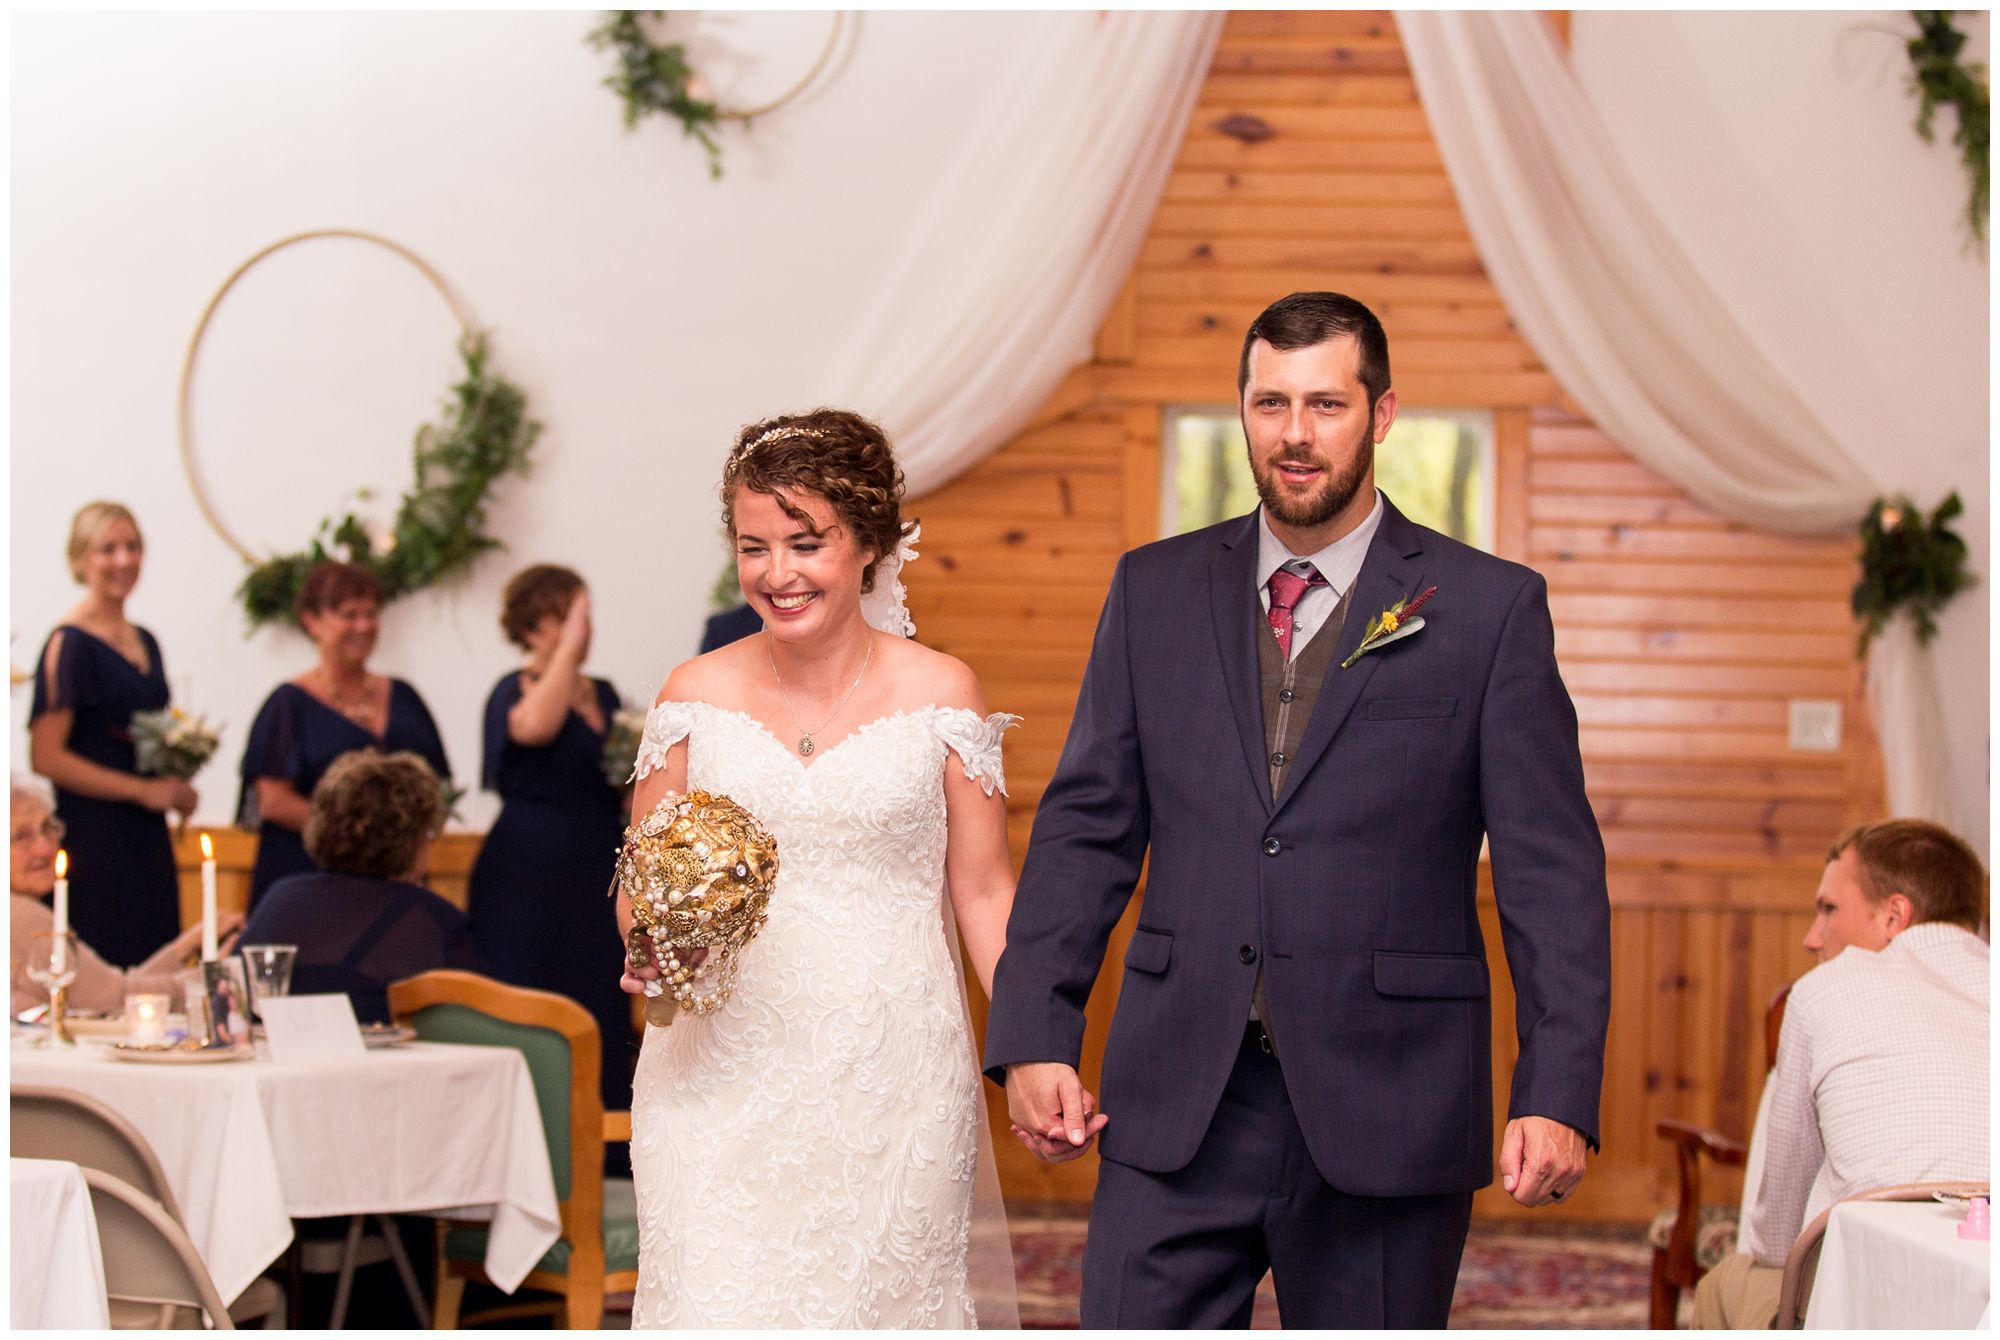 wedding ceremony at Western Howard Conservation Club in Peru Indiana